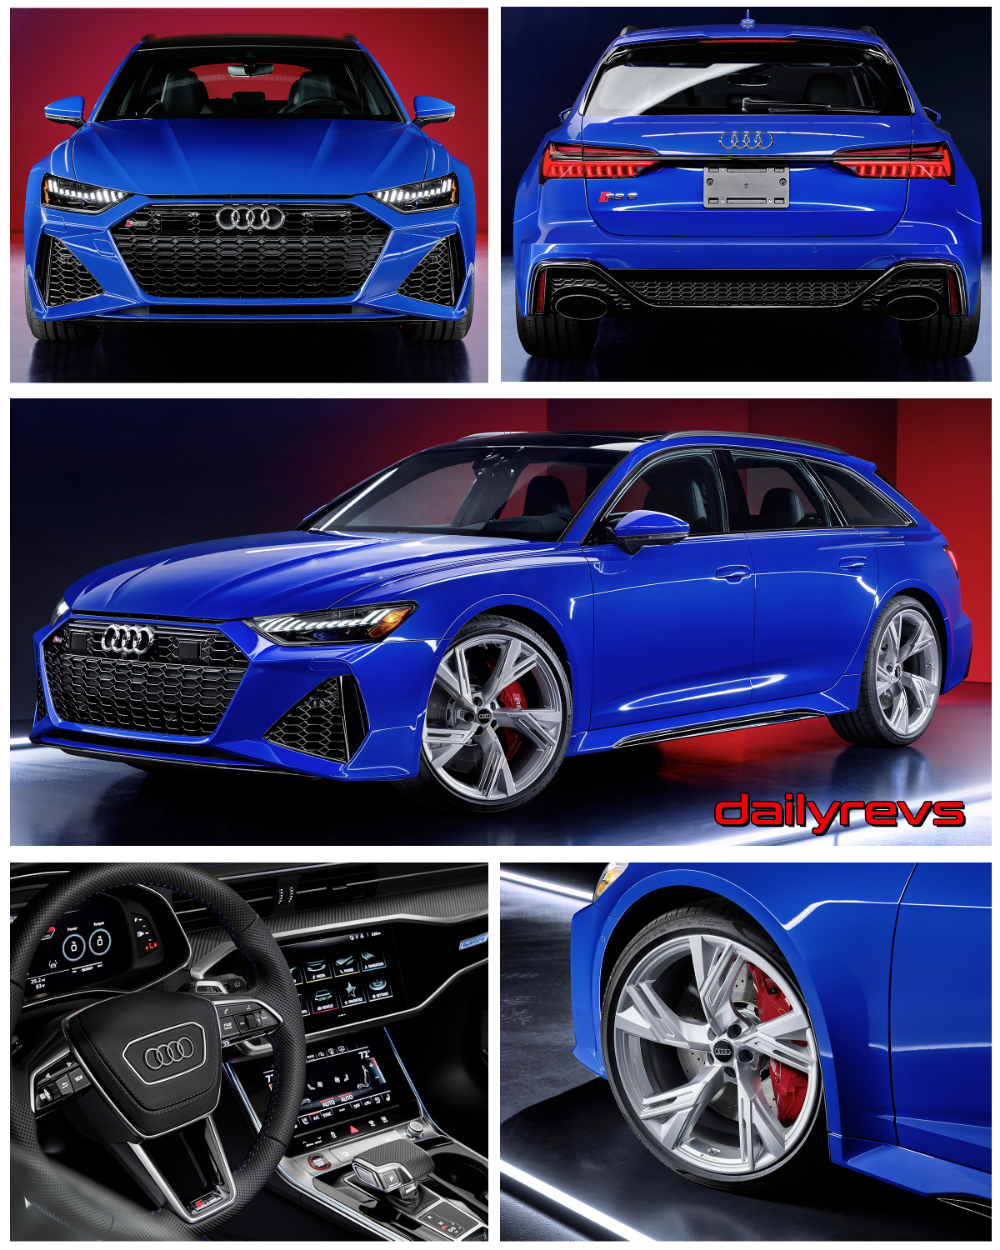 2021 Audi RS6 Avant RS Tribute Edition - Dailyrevs in 2020 ...